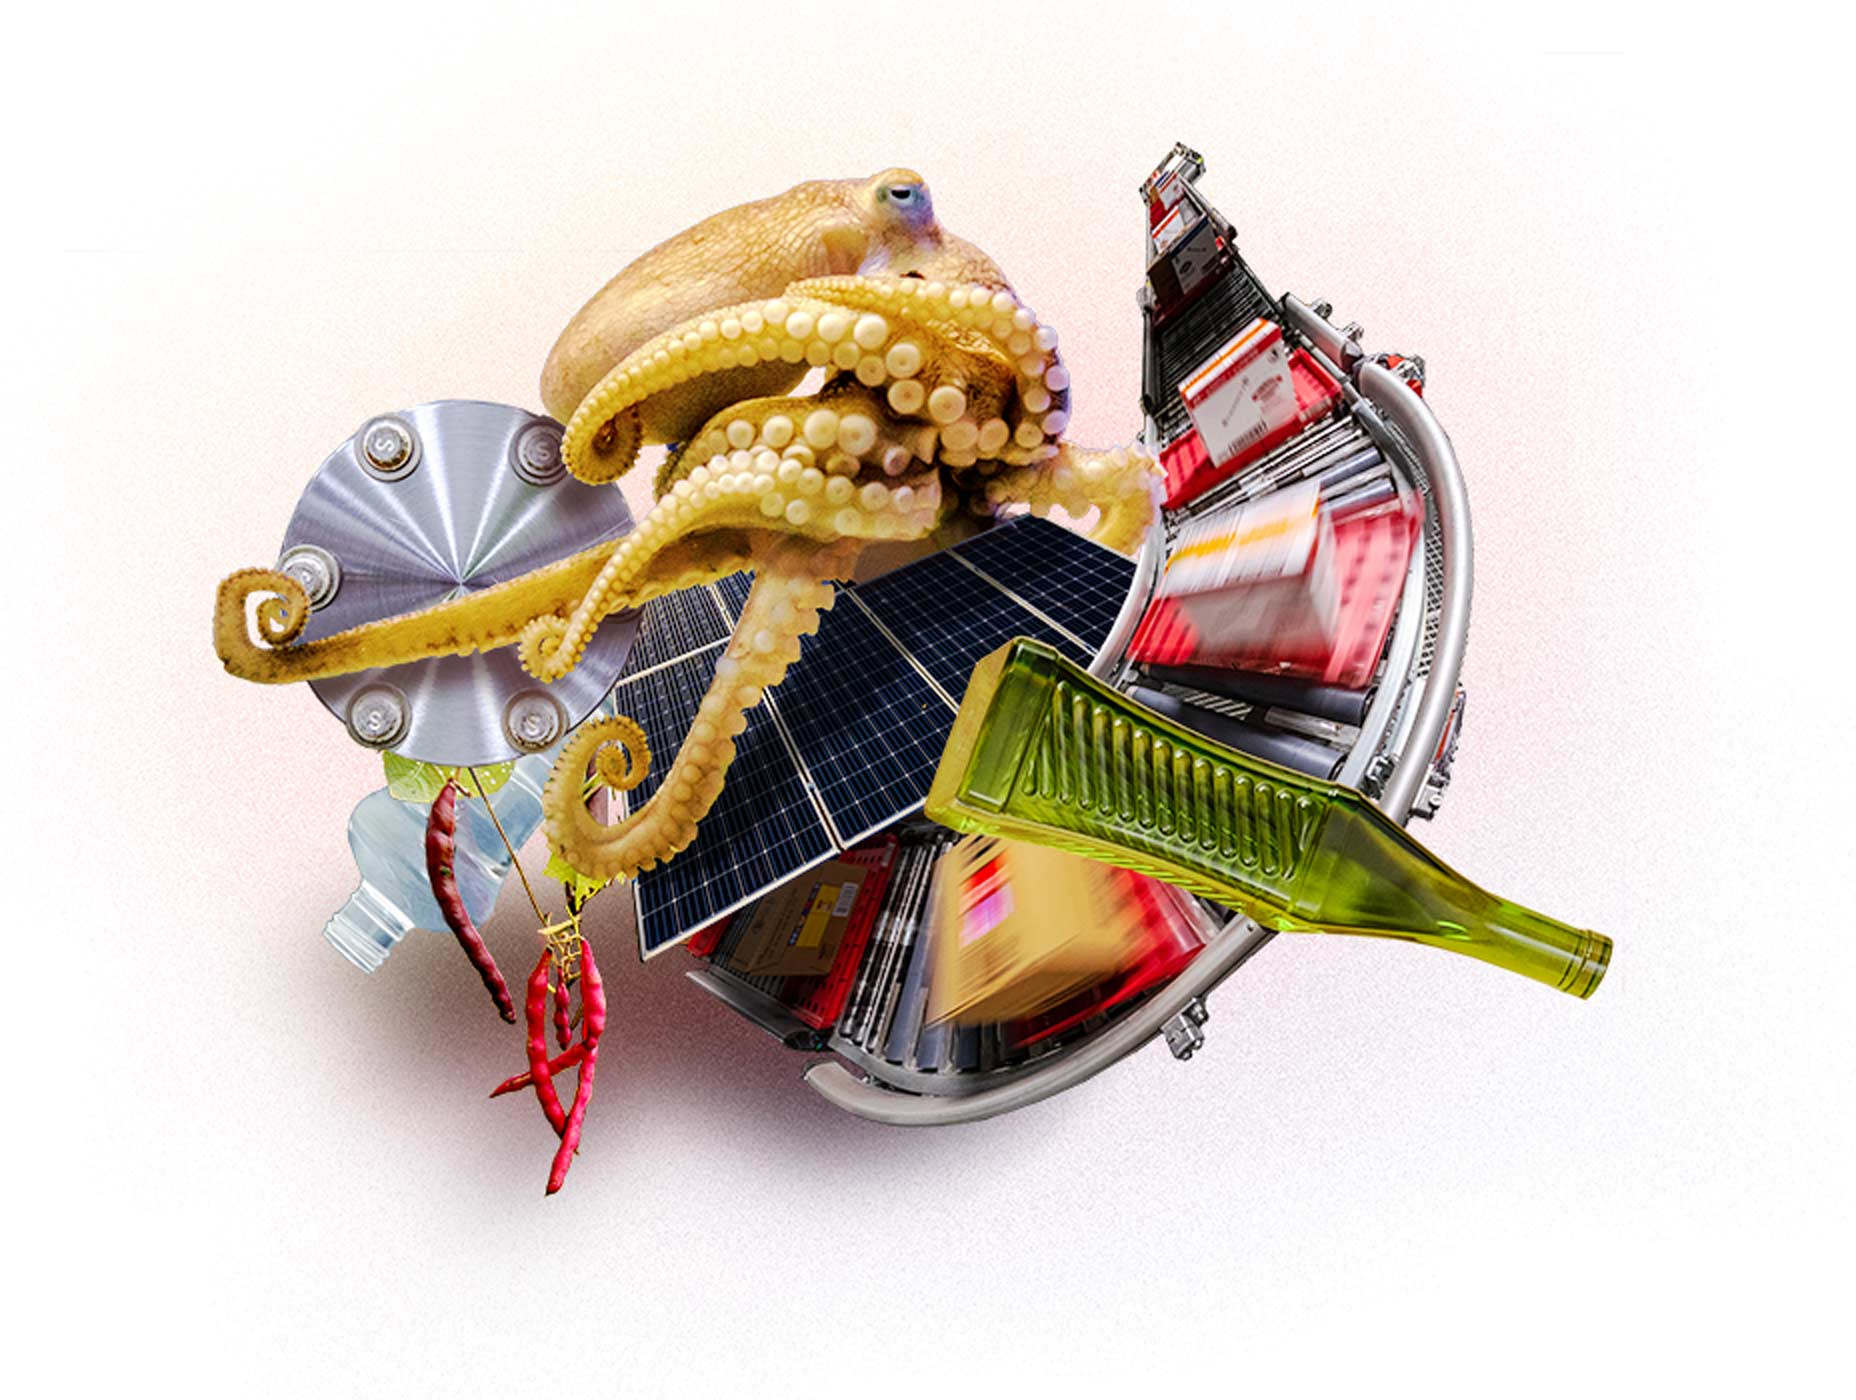 illustration of an octopus, solar panels, a bottle, conveyer belt and machine all tangled up